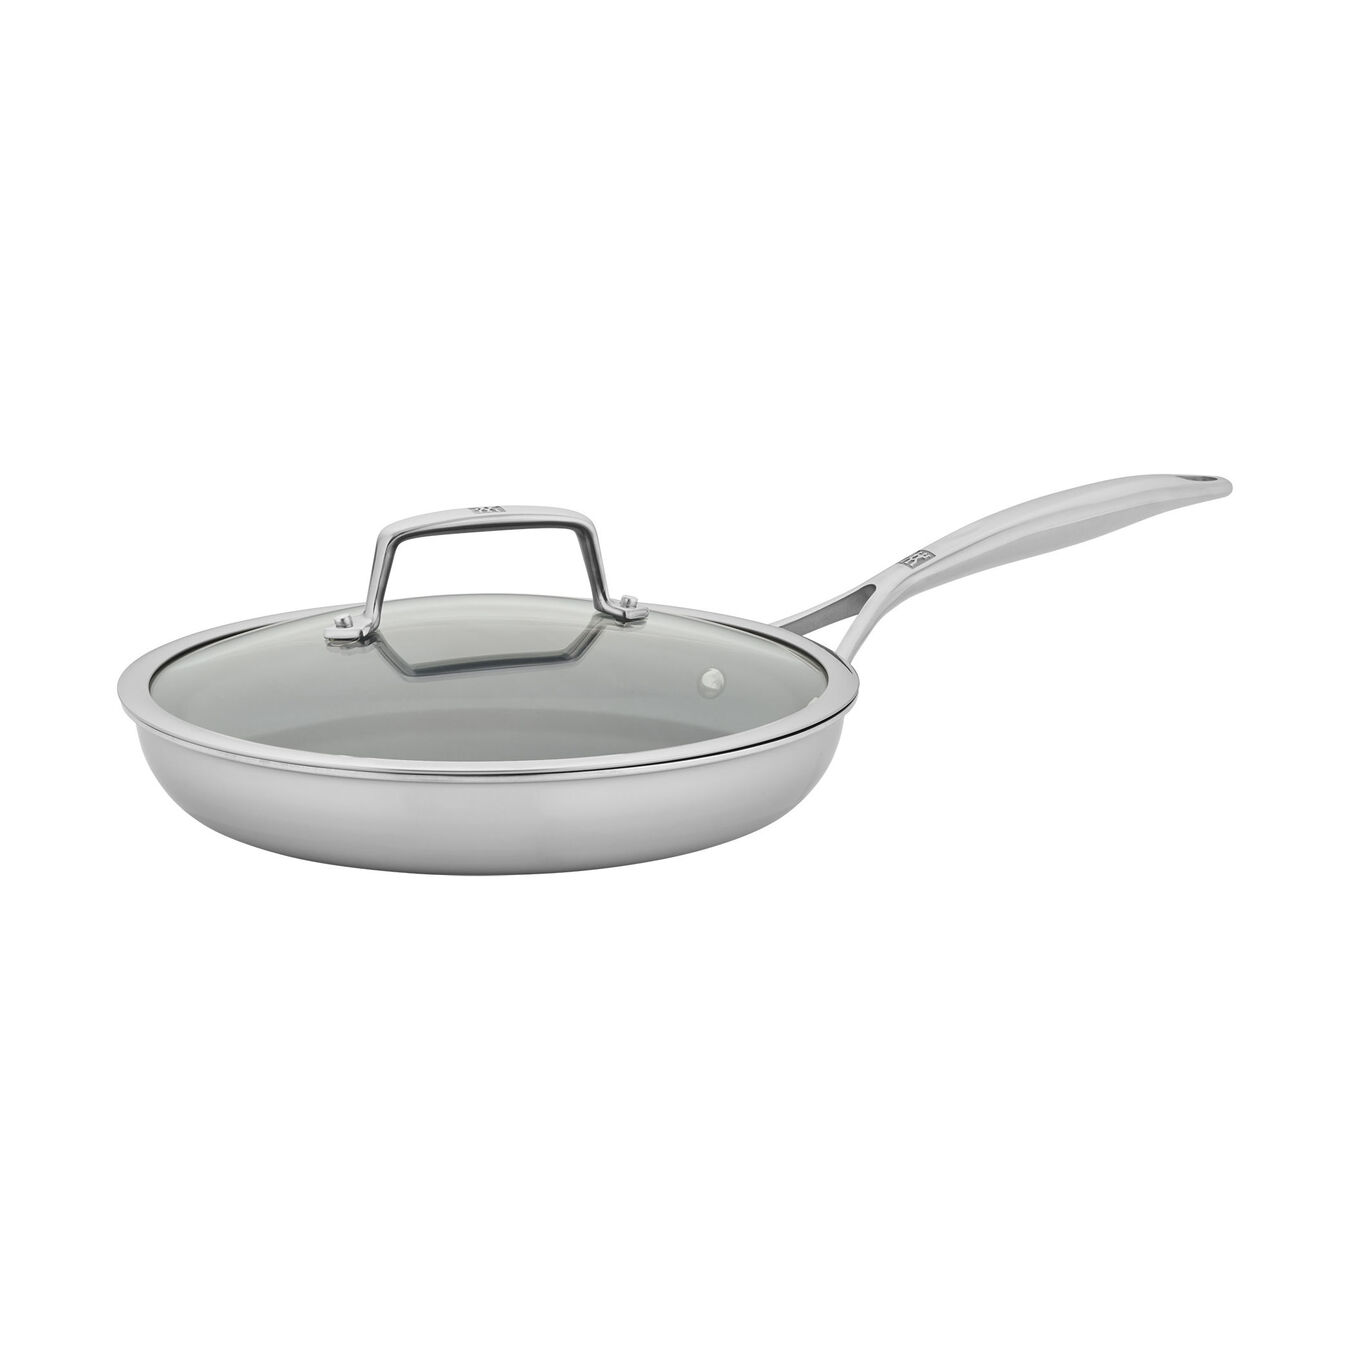 2-pc, 18/10 Stainless Steel, Non-stick, Frying pan set,,large 1